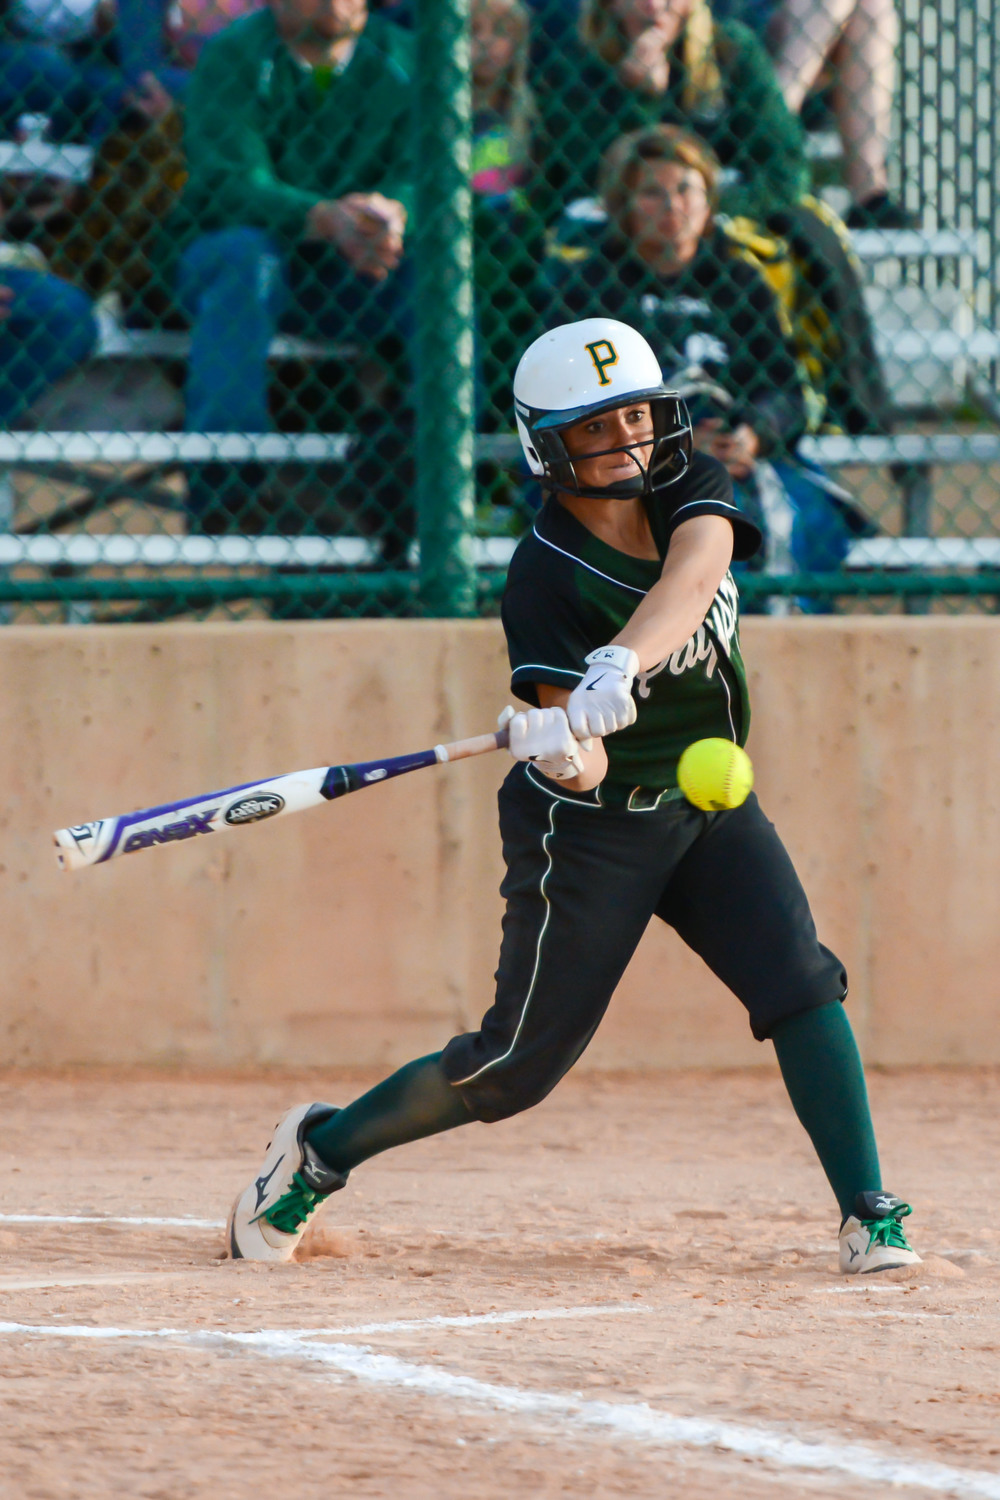 Bailee Kay of Payson hitting against Gunnison Valley.  Photo by Todd Phillips: See www.PicMe.Shining.com for more